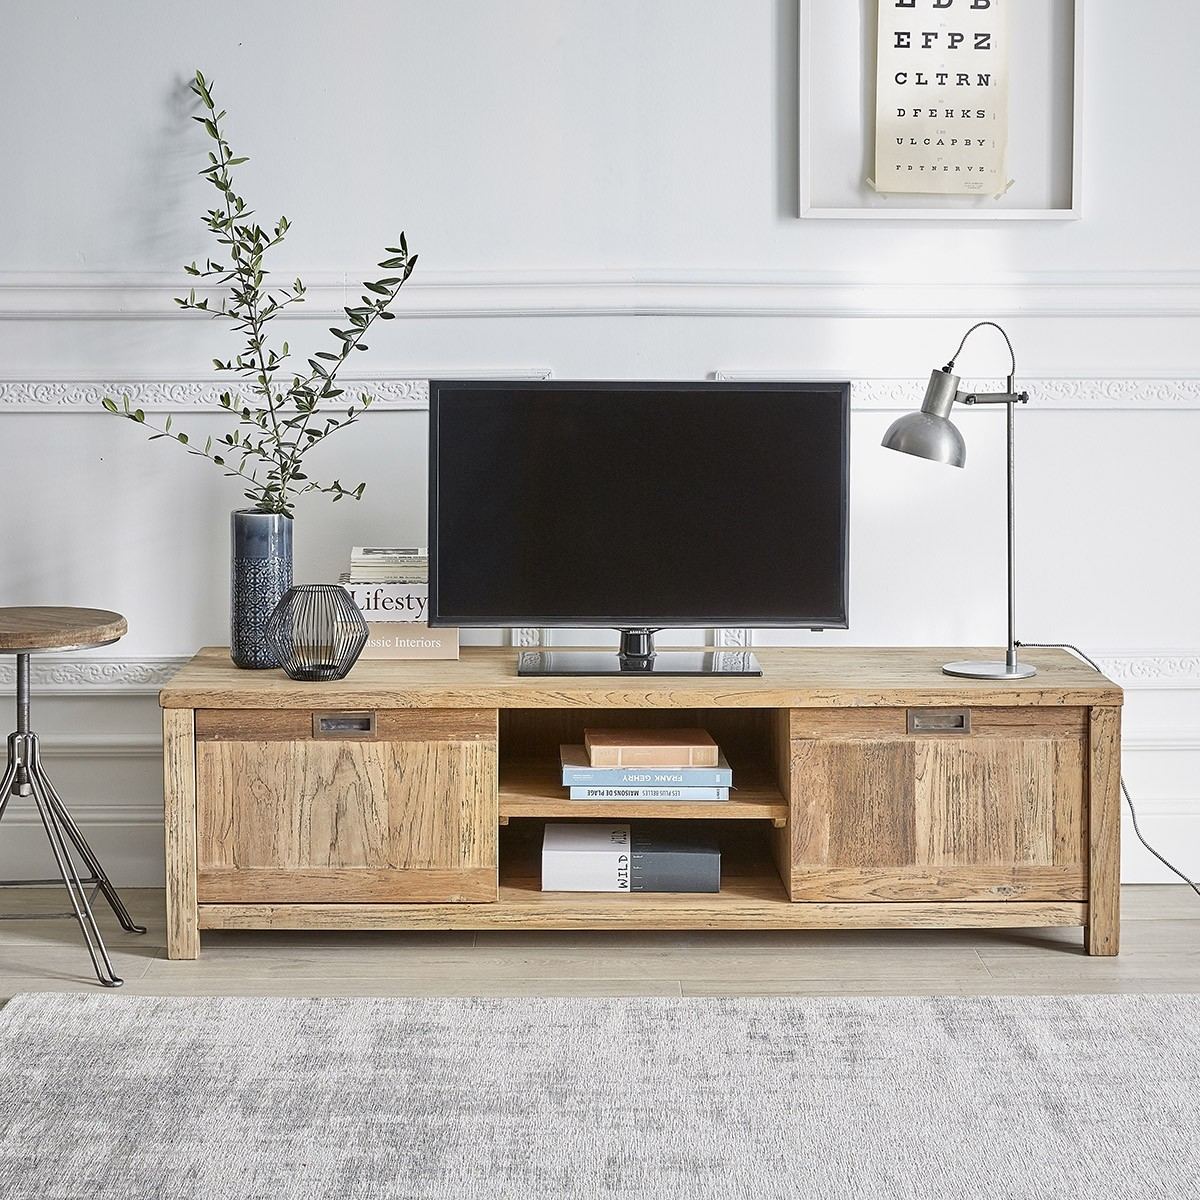 meuble tv en bois de teck recycl 160 cargo bois dessus bois dessous. Black Bedroom Furniture Sets. Home Design Ideas